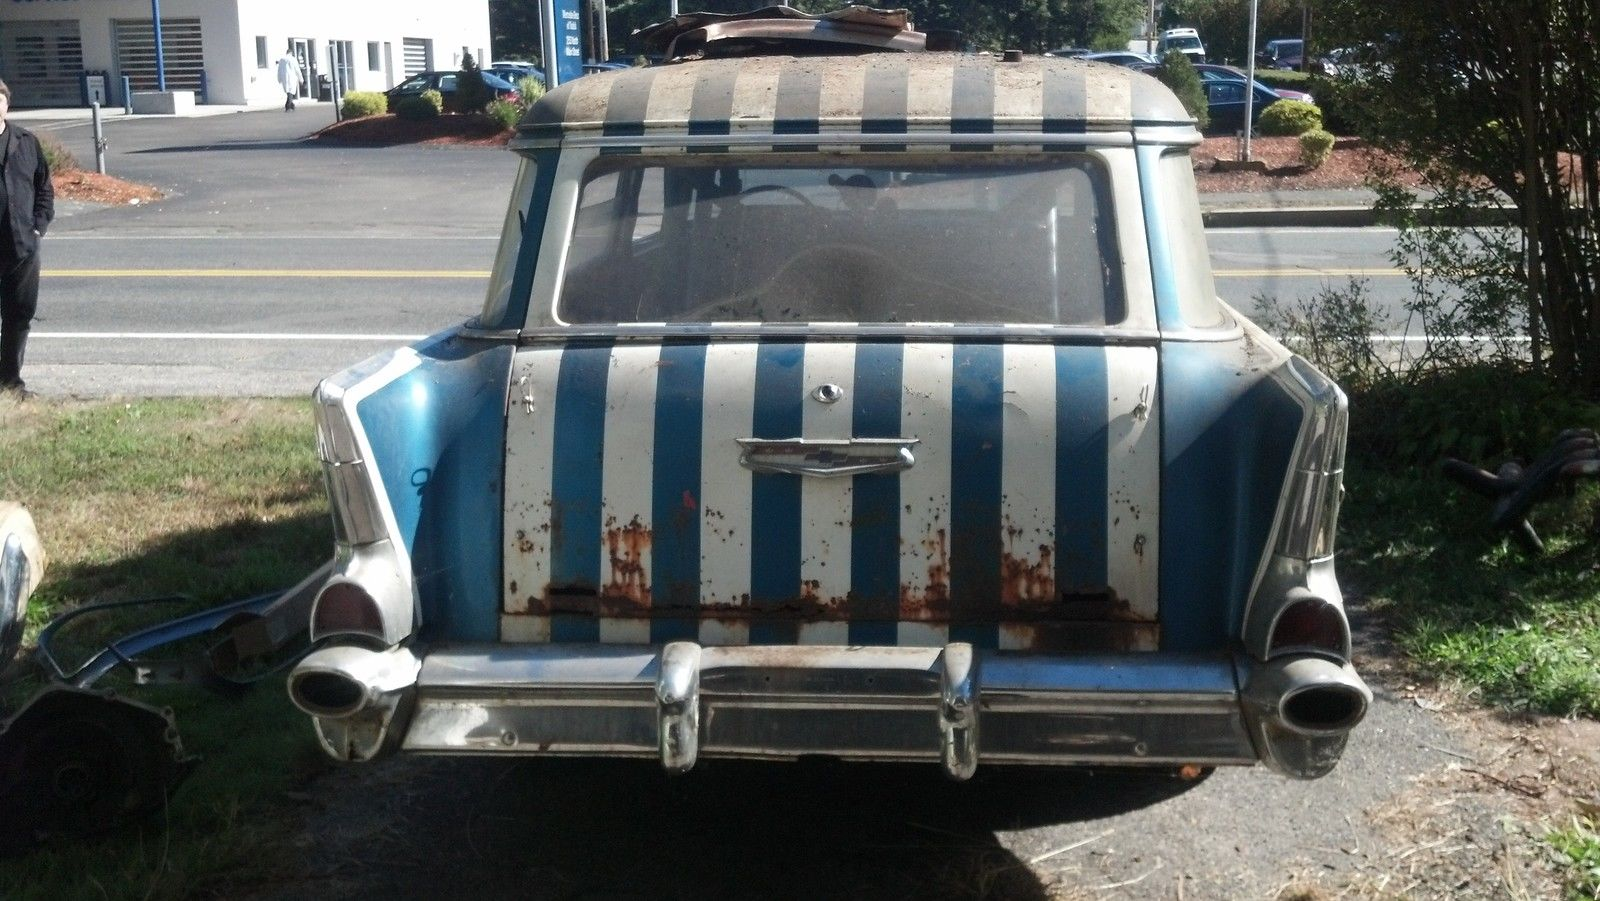 Hqdefault besides Maxresdefault furthermore Hrdp Chevy Gasser Cloning Without The Side Effects in addition Hqdefault moreover Custom Chevy Ton Truck For Sale X. on 1957 chevy gasser